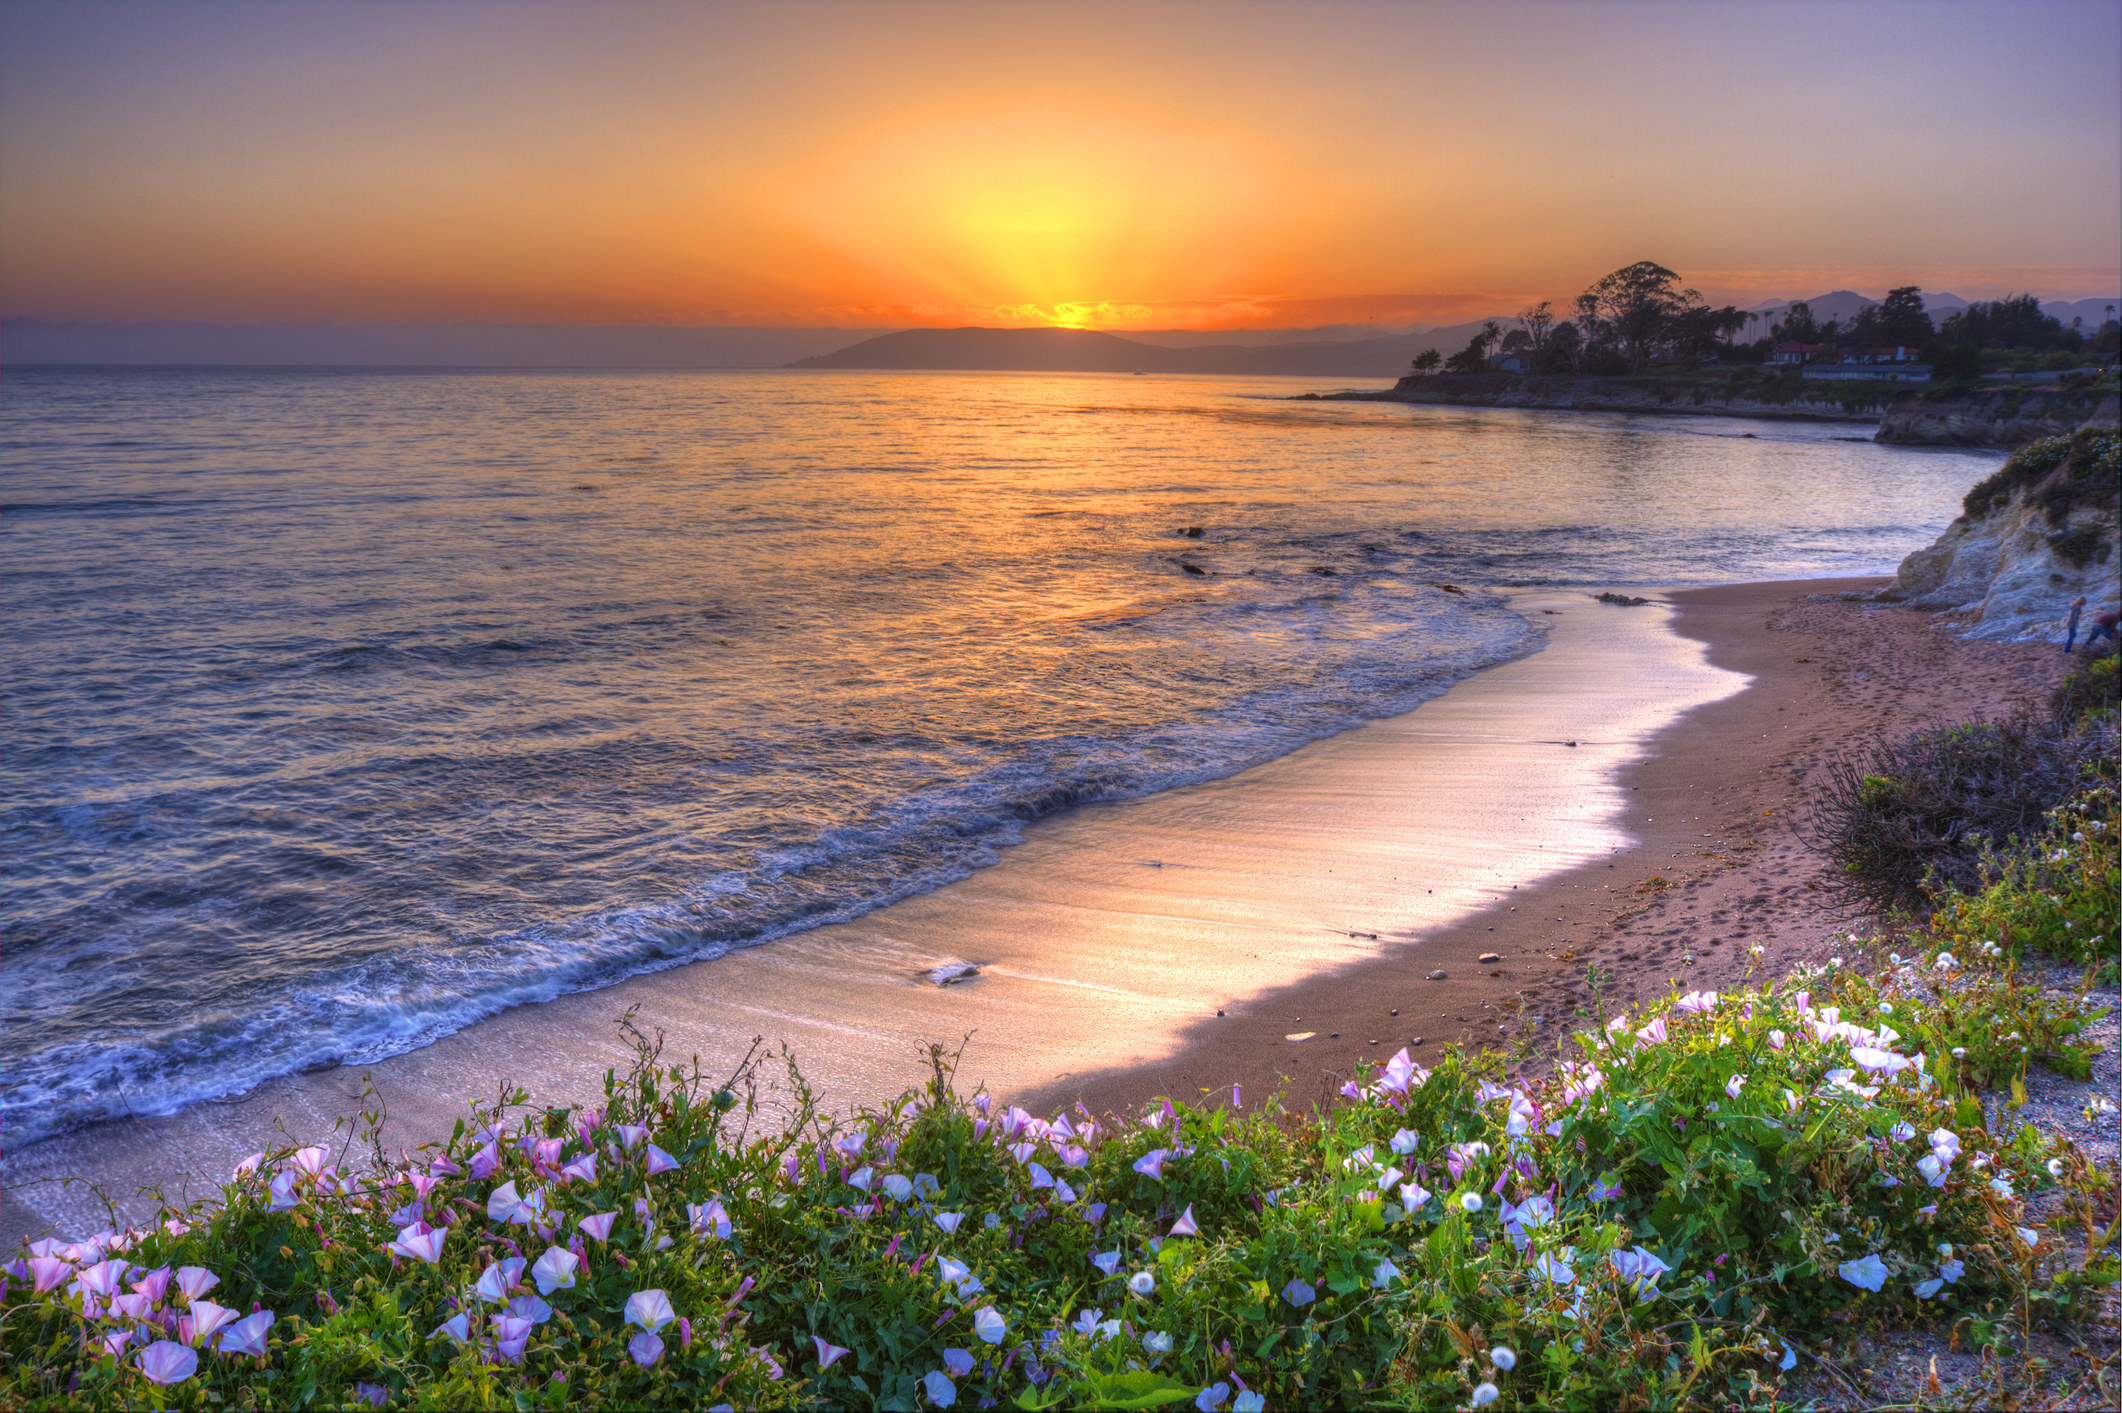 Shell Beach at sunset with wildflowers growing along the cliff